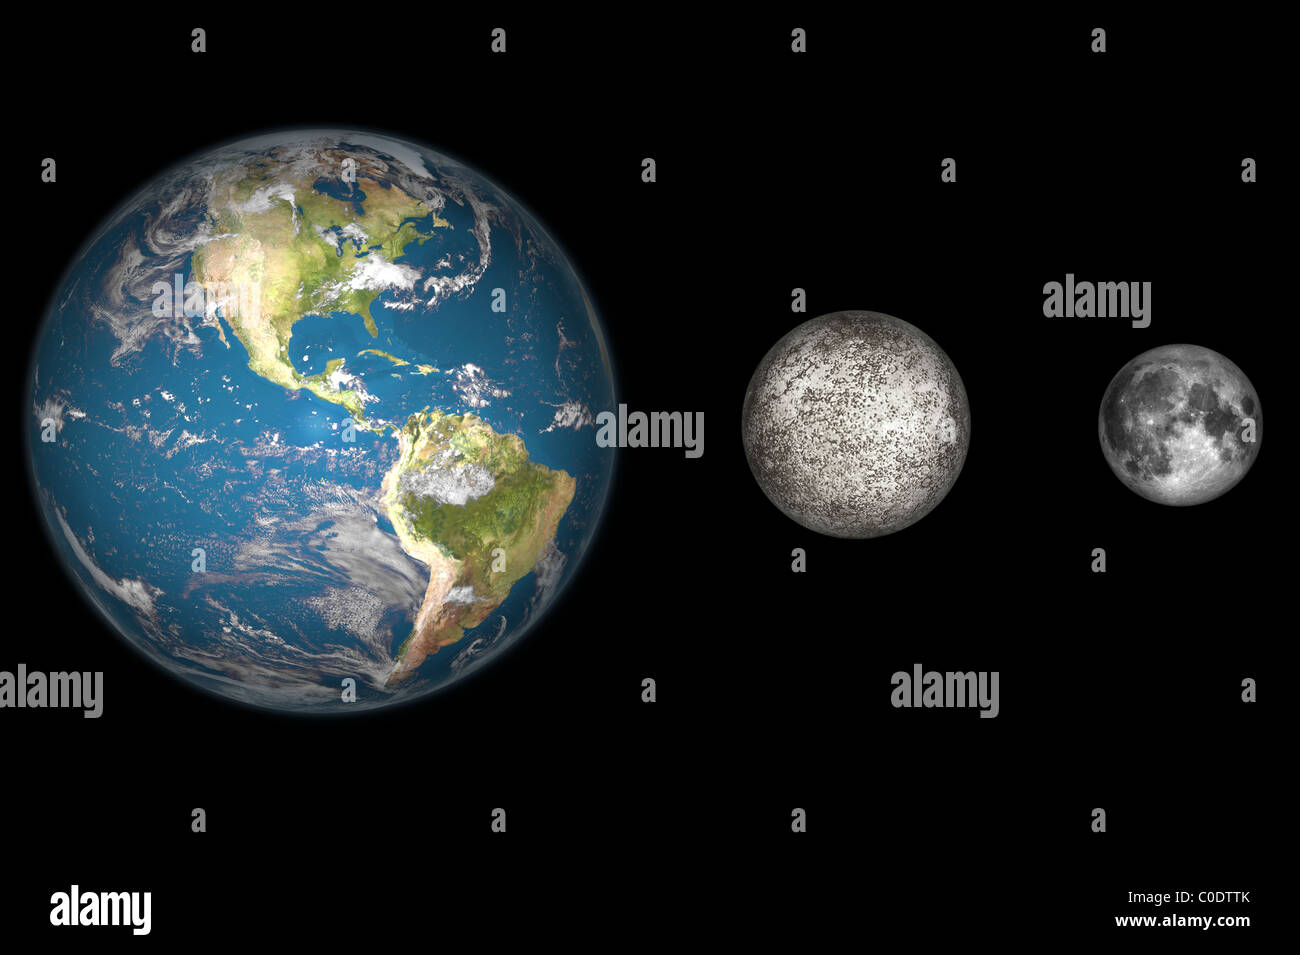 Artist's concept of the Earth, Mercury, and Earth's moon to scale. - Stock Image